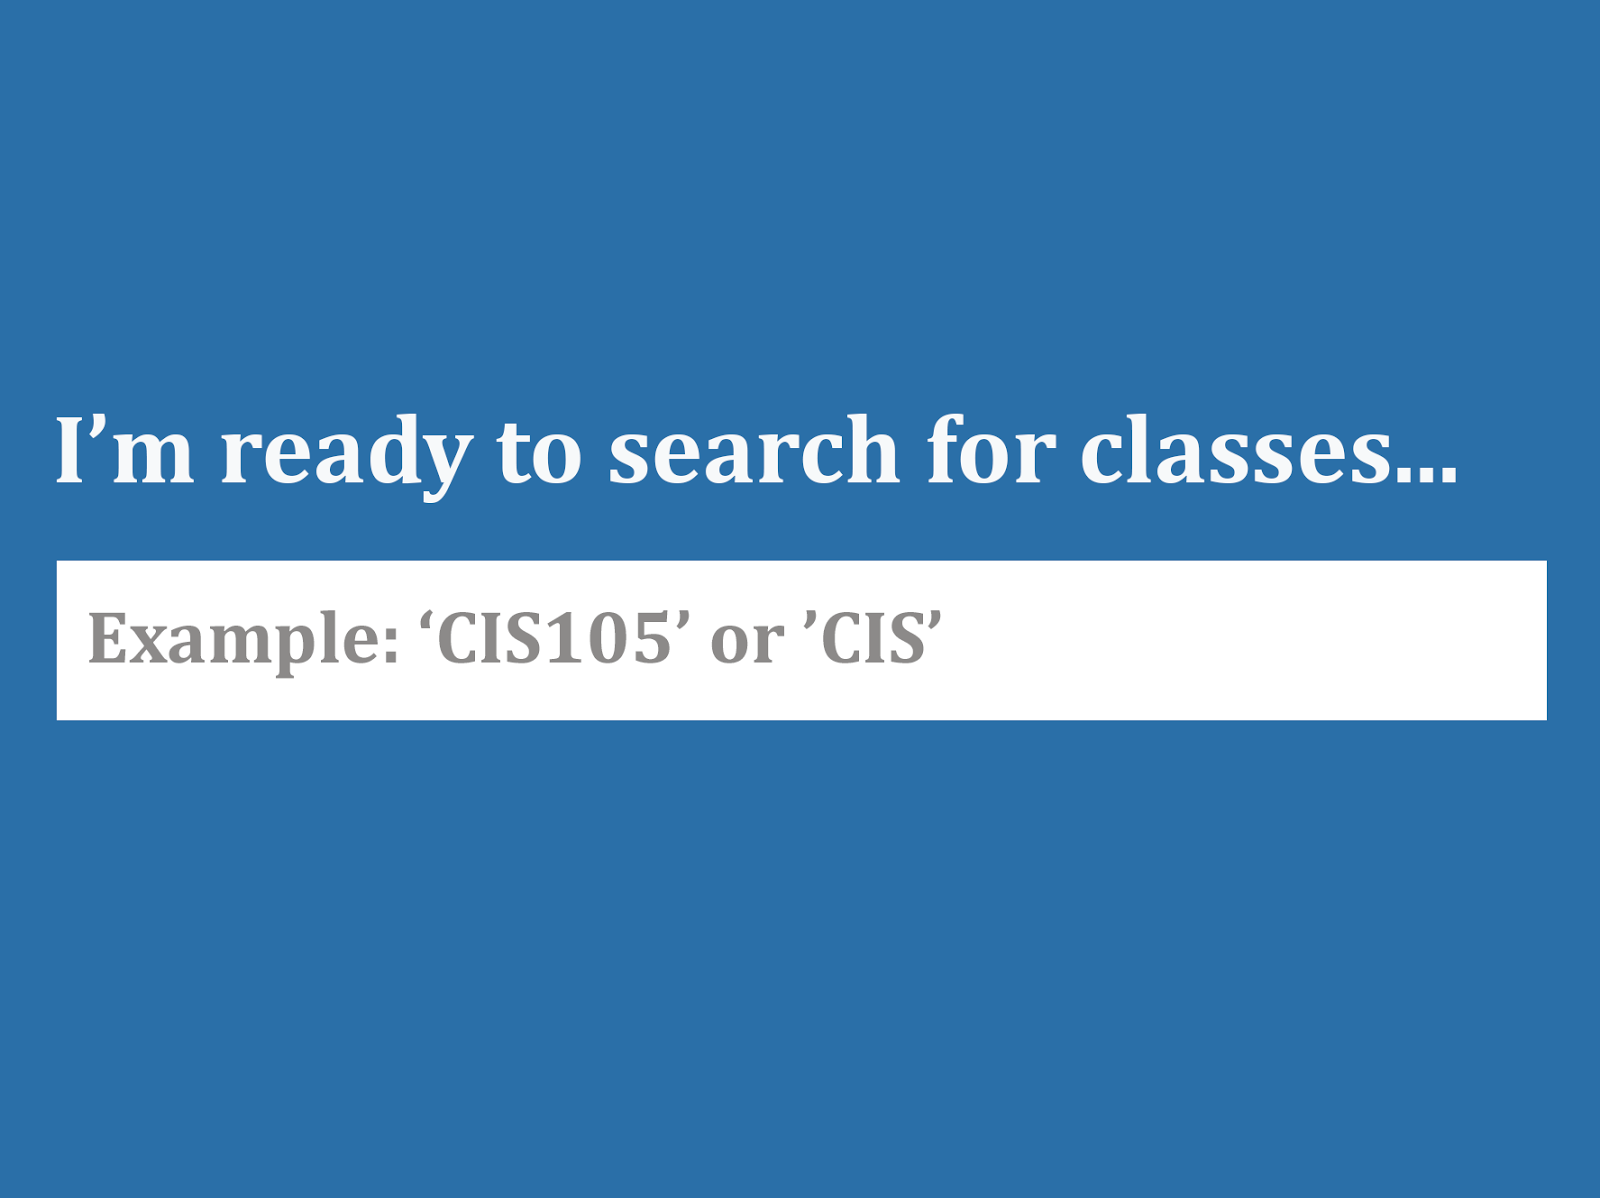 Image of search engine.  Text: I'm ready to search for classes...